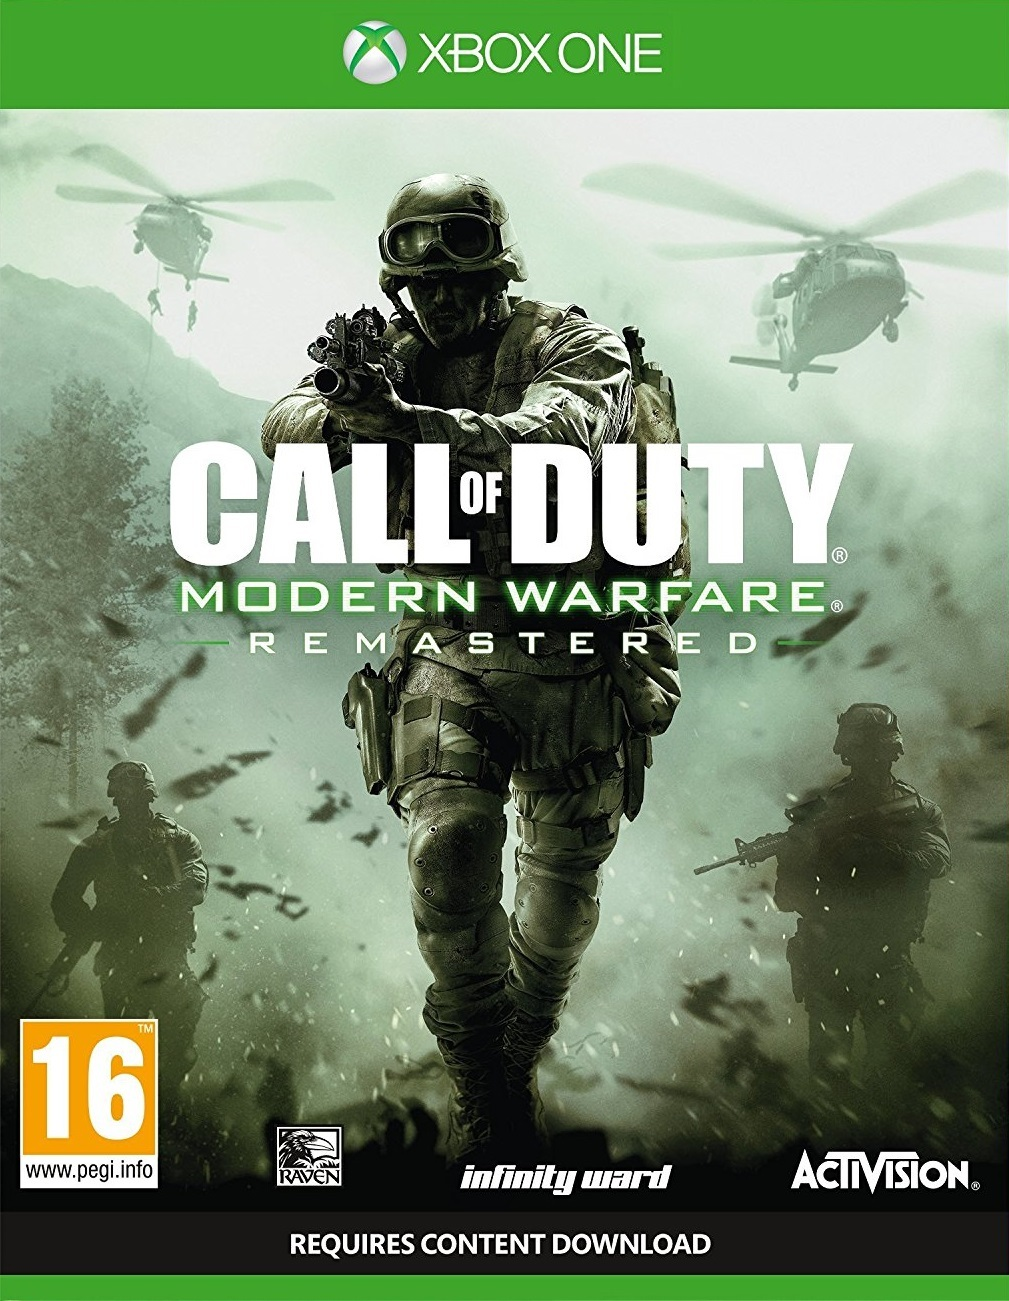 Call of Duty: Modern Warfare Remastered for Xbox One image